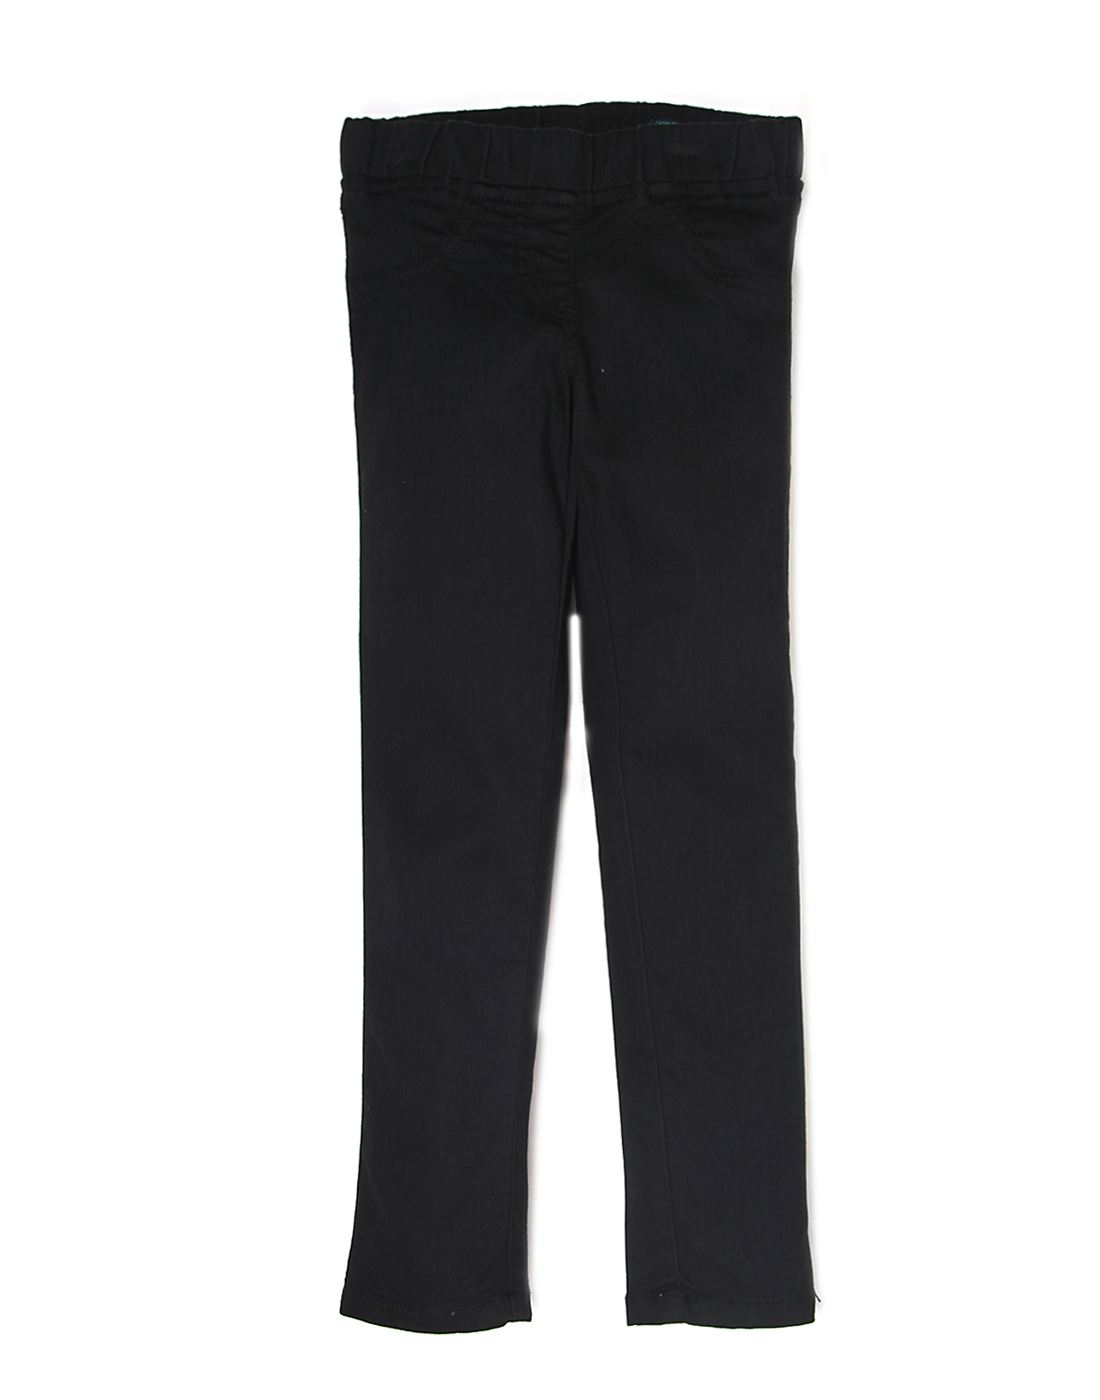 United Colors Of Benetton Girls Black Trousers